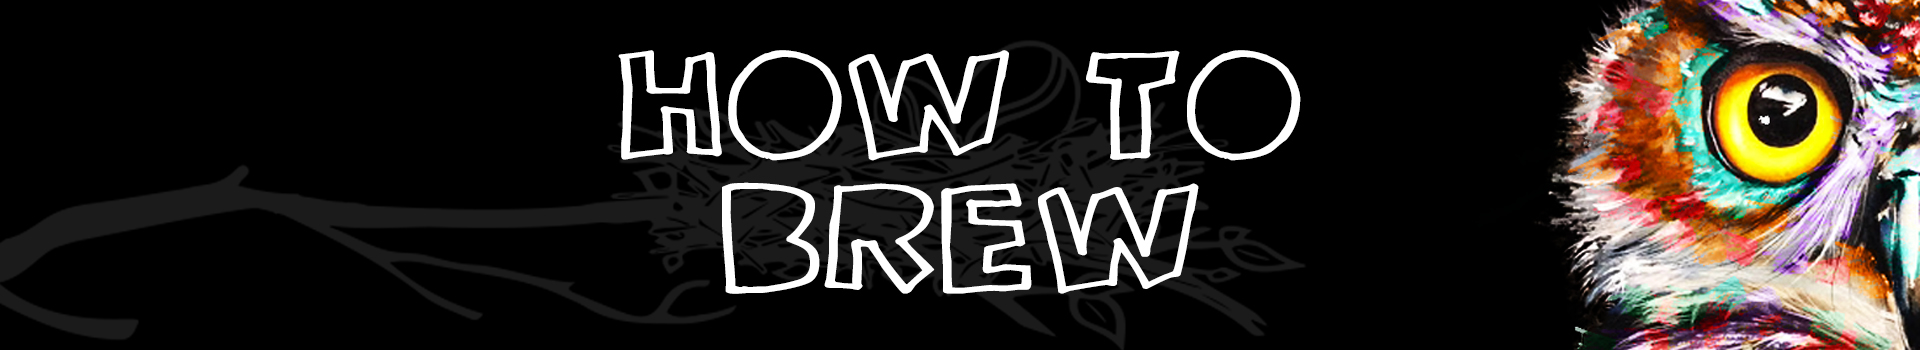 FTE_LO_HOW TO BREW